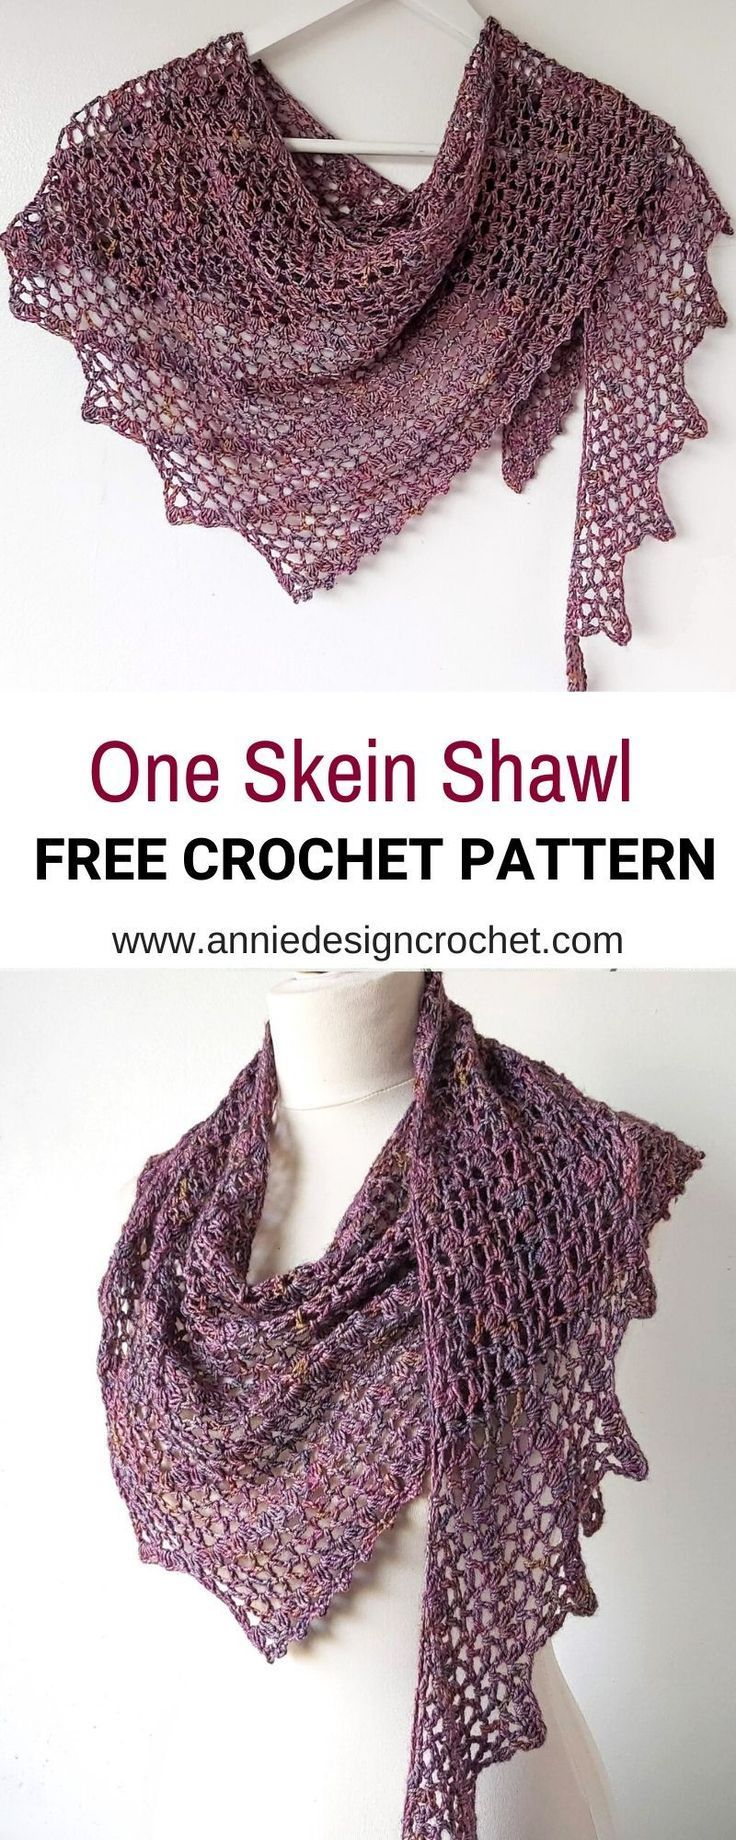 One Skein Crochet Shawl Pattern - Tendril - Annie Design Crochet